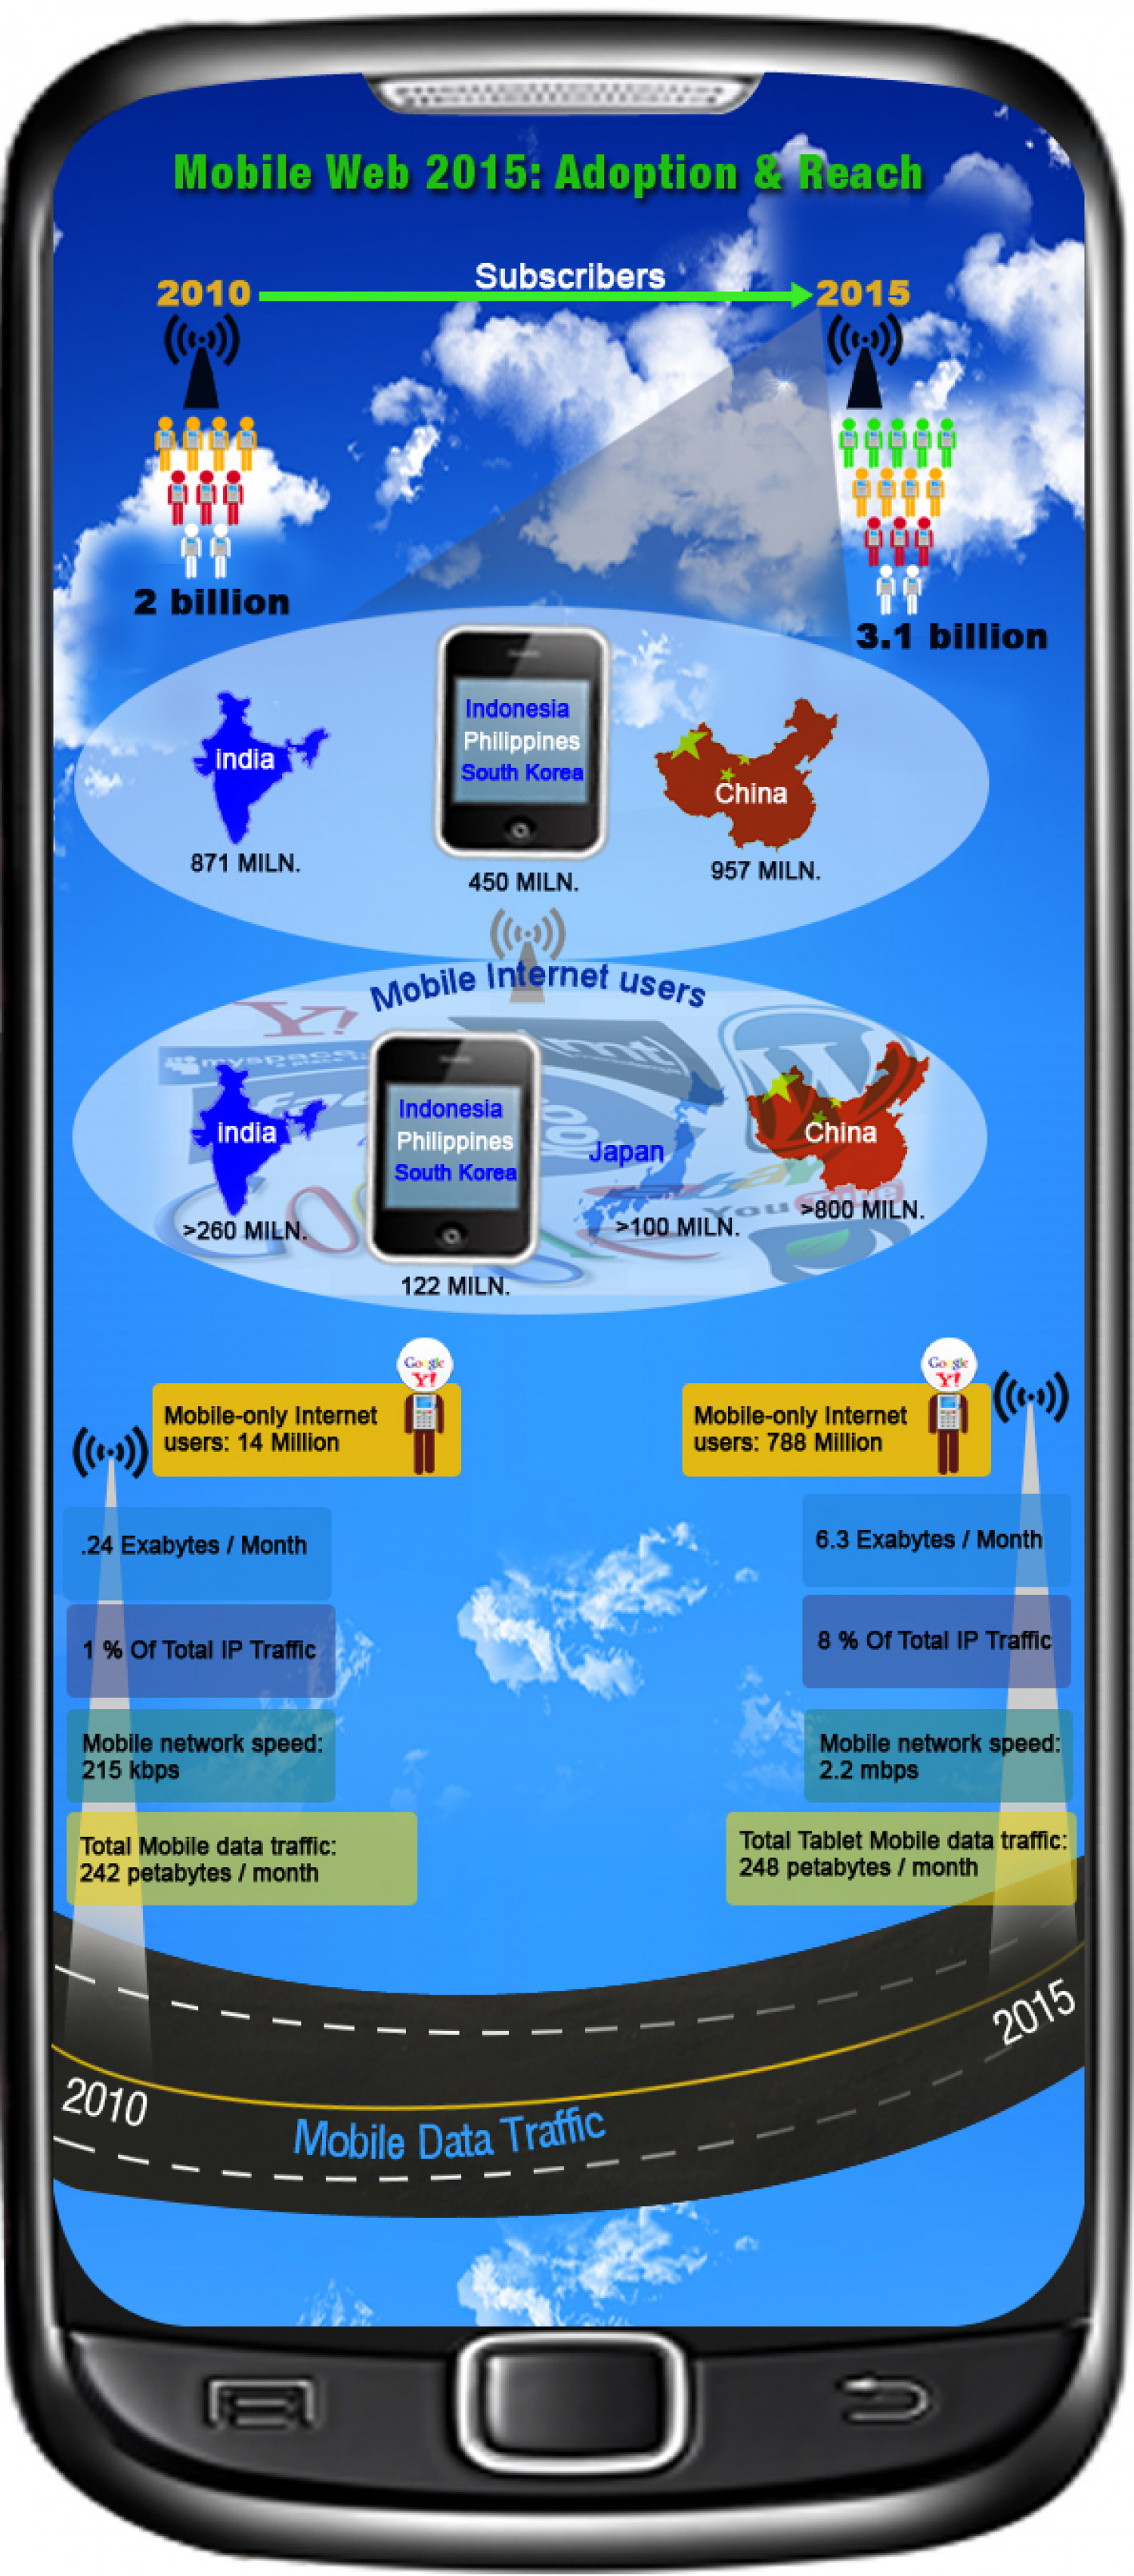 Mobile Web 2015: Adoption & Reach Infographic